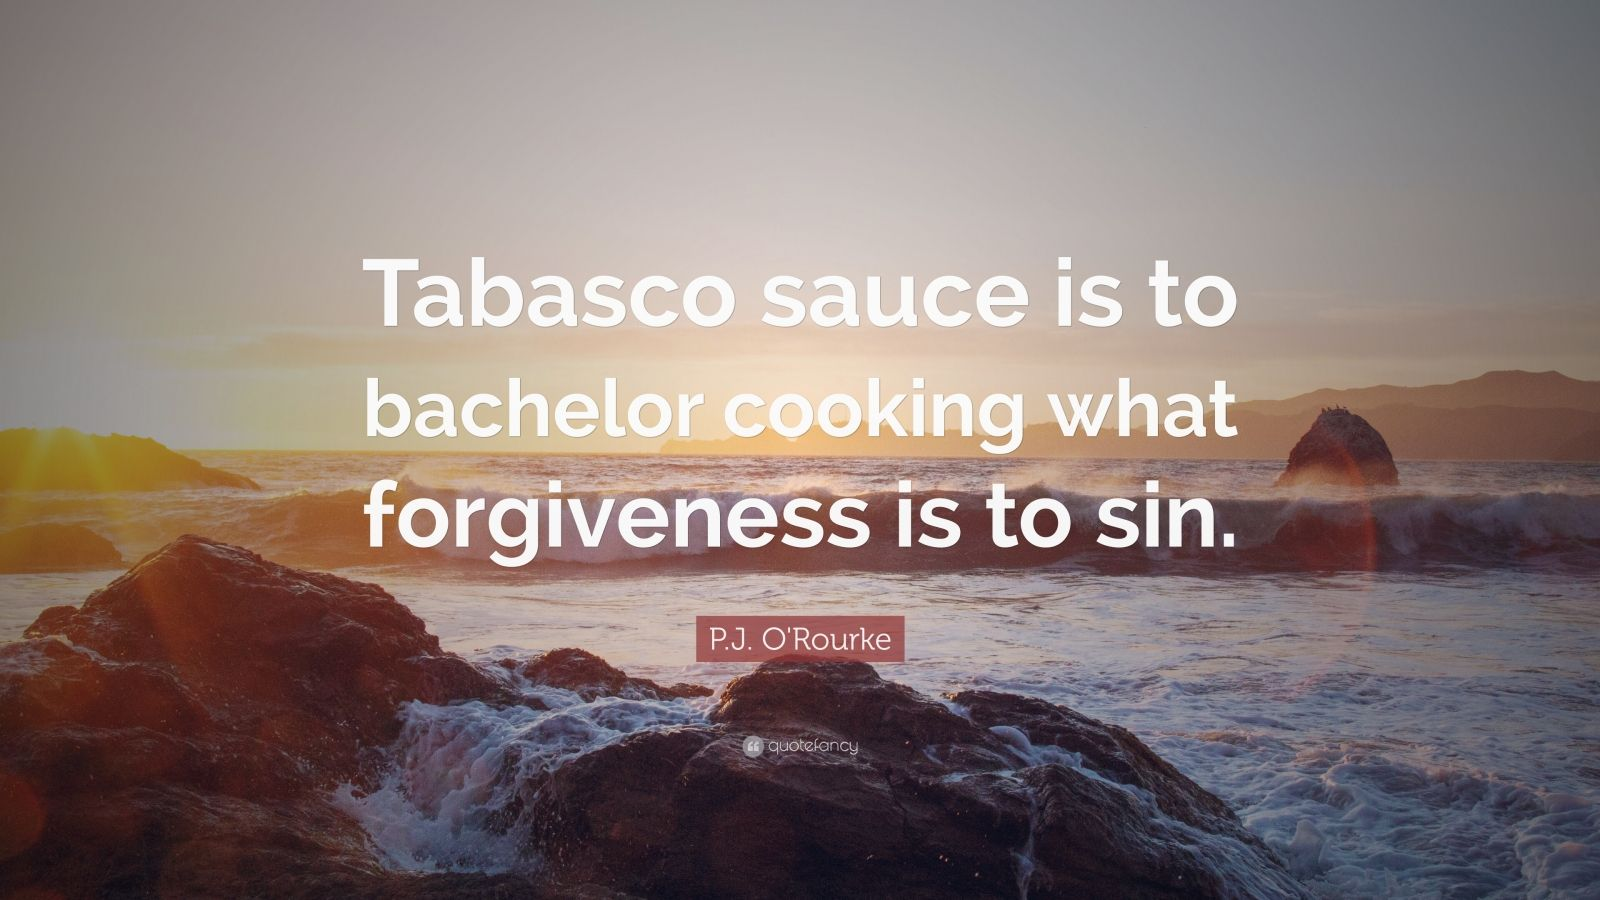 "P.J. O'Rourke Quote: ""Tabasco sauce is to bachelor cooking what forgiveness is to sin."""